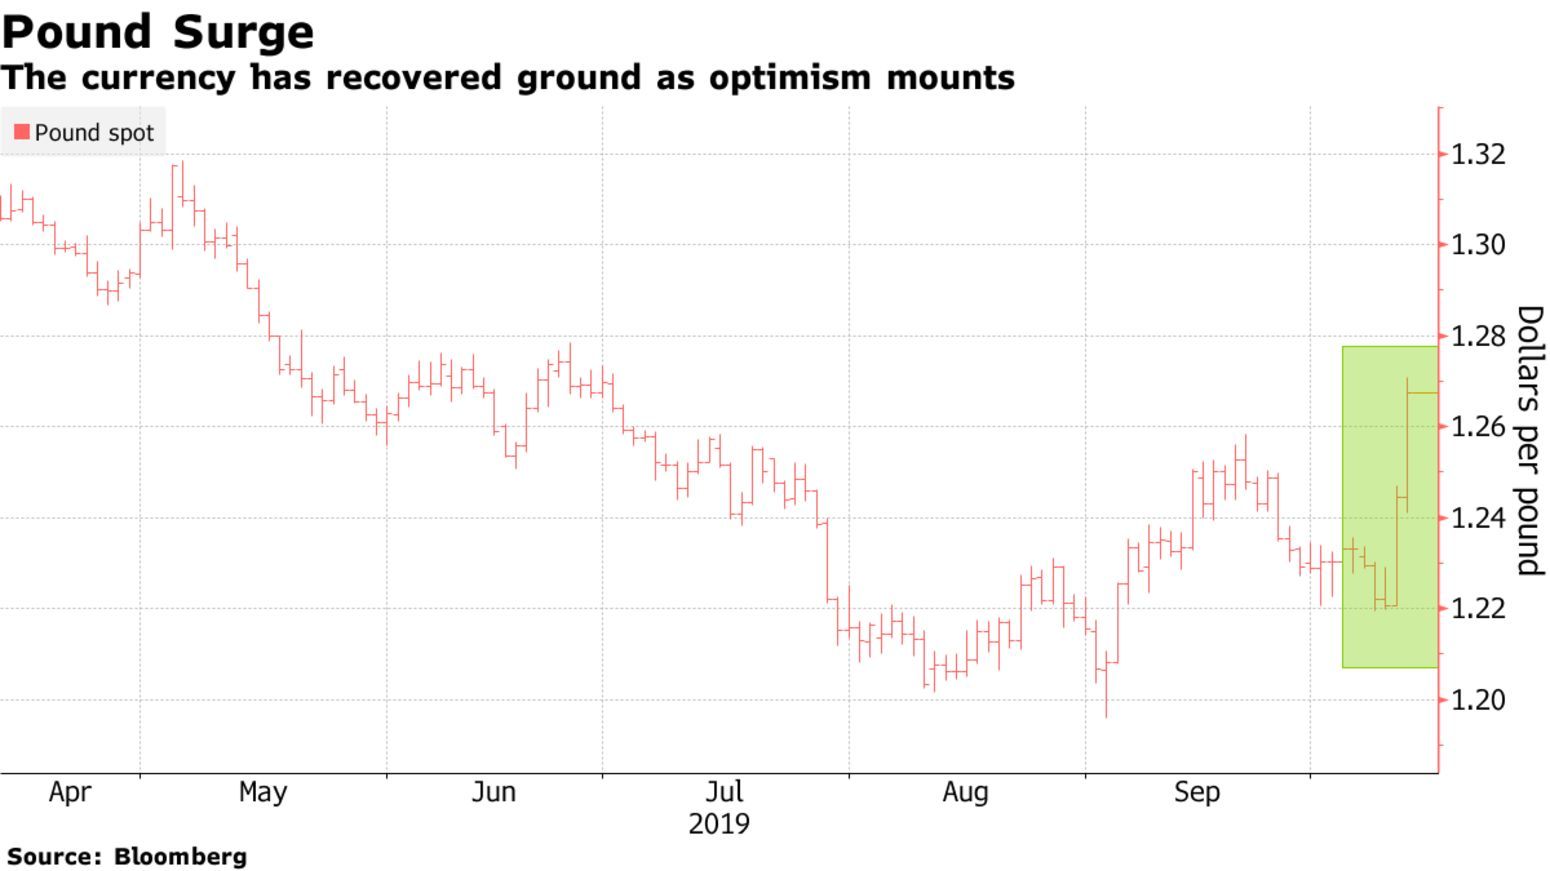 The currency has recovered ground as optimism mounts